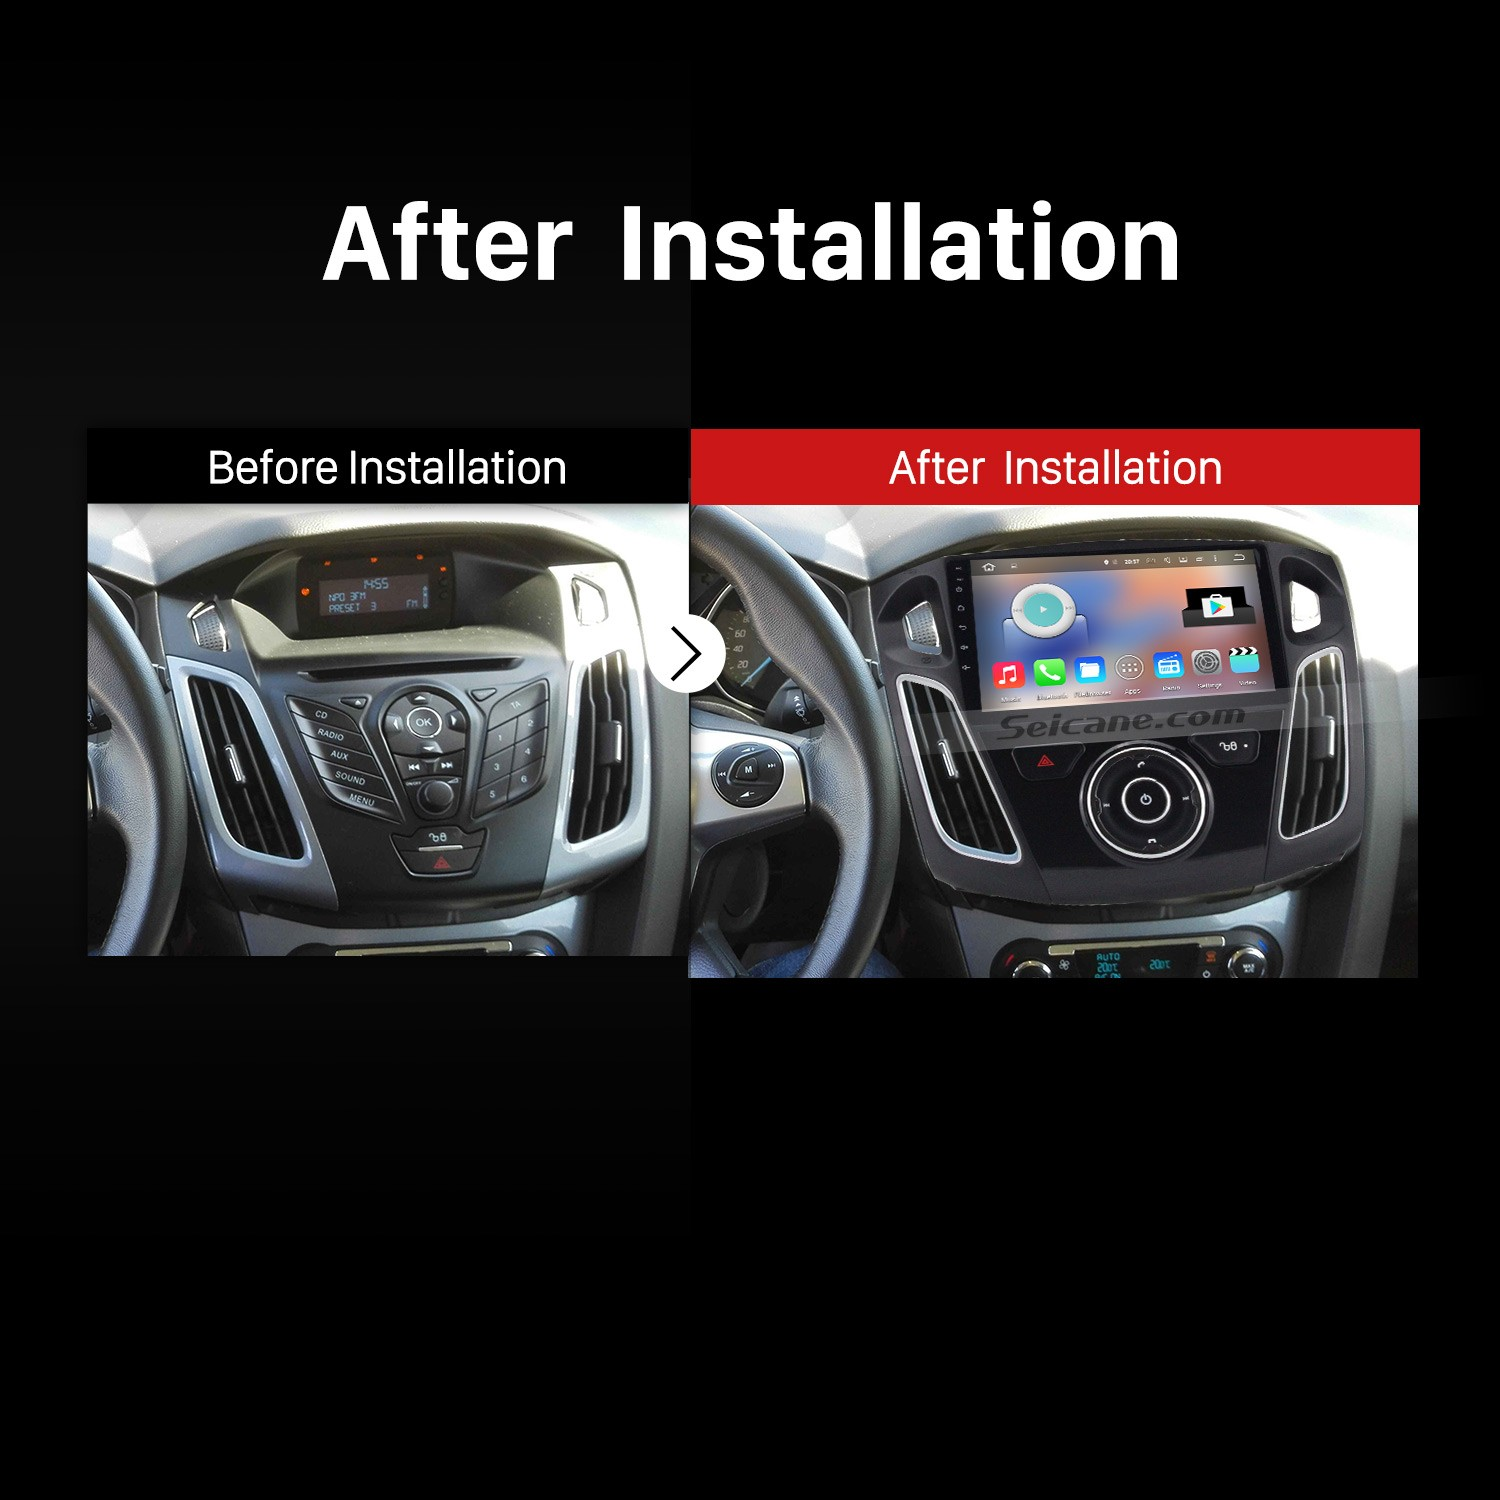 free ford navigation dvd update dometic fridge 12v wiring diagram how to upgrade a 2011 c max head unit with stereo